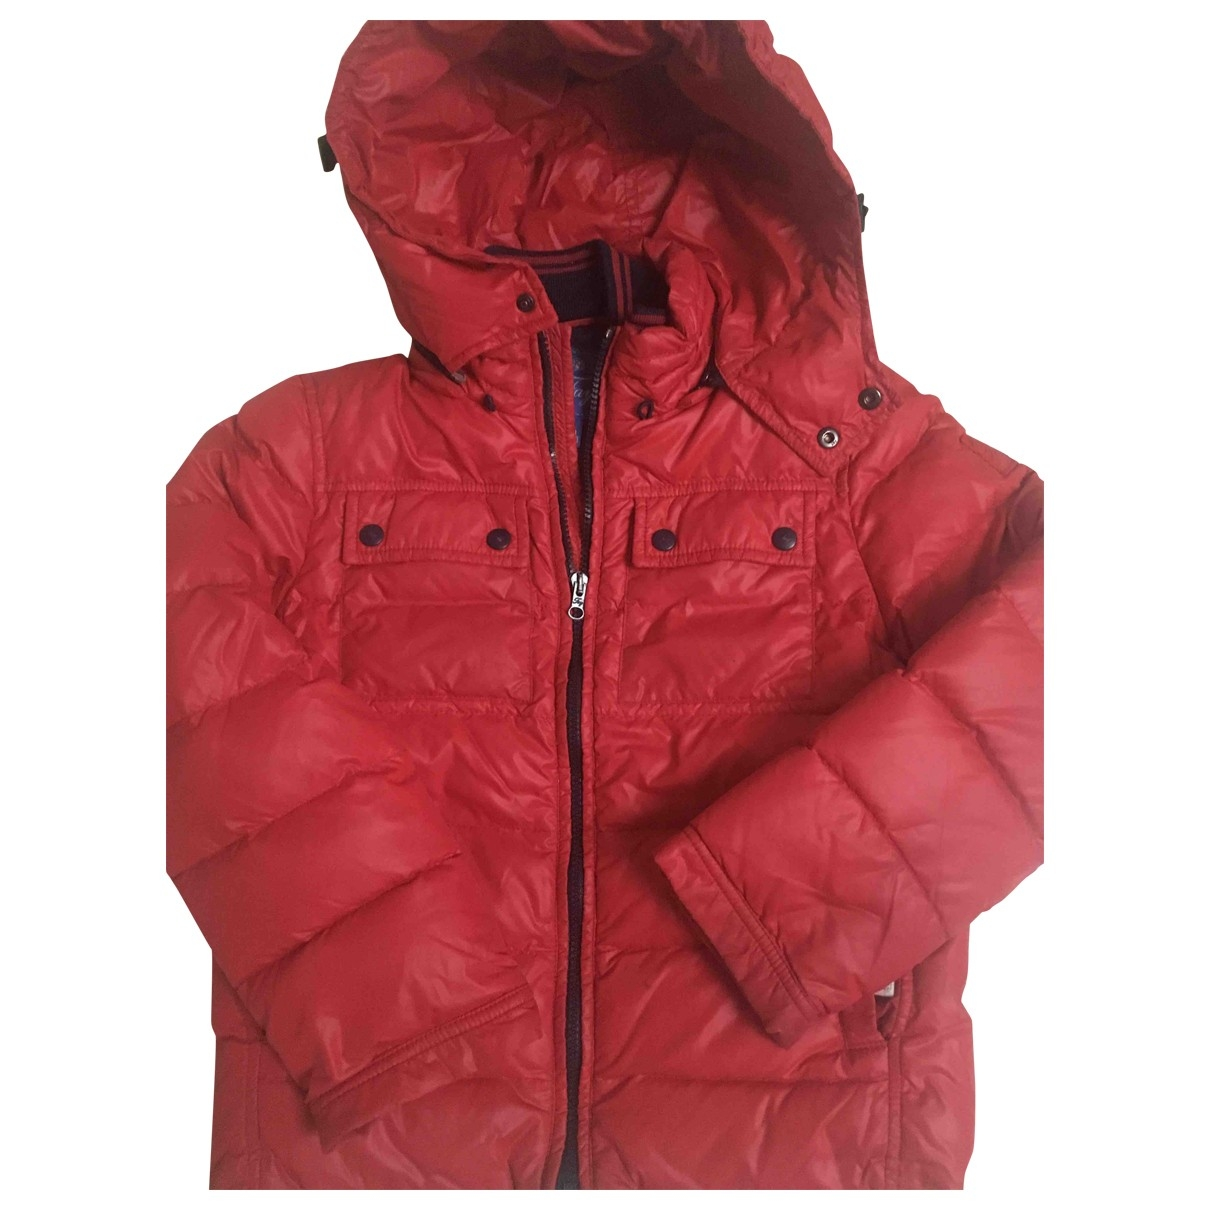 Fay \N Red jacket & coat for Kids 8 years - up to 128cm FR